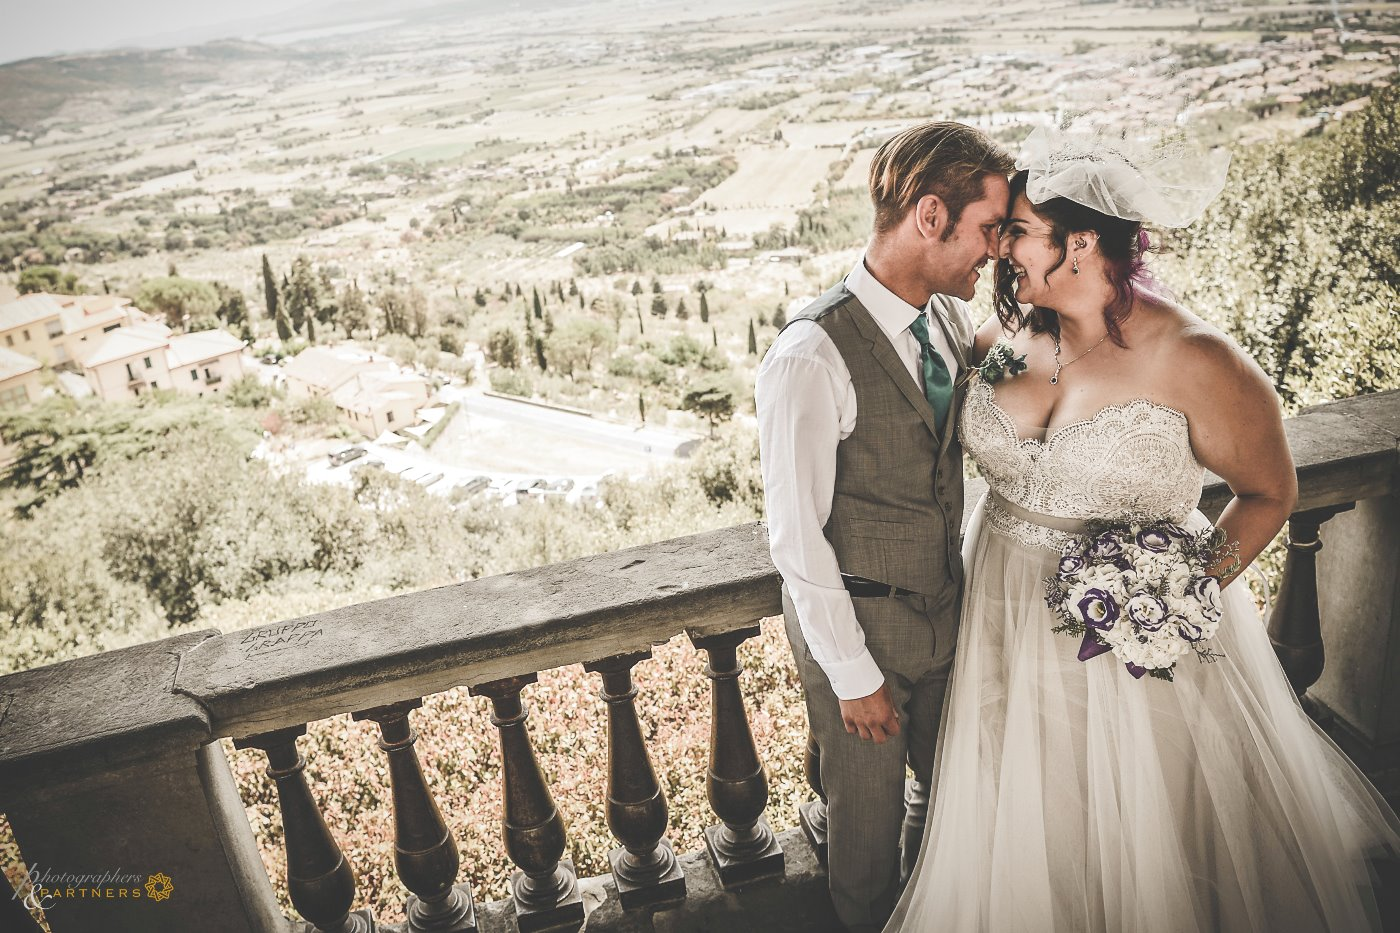 photographers_weddings_tuscany_10.jpg